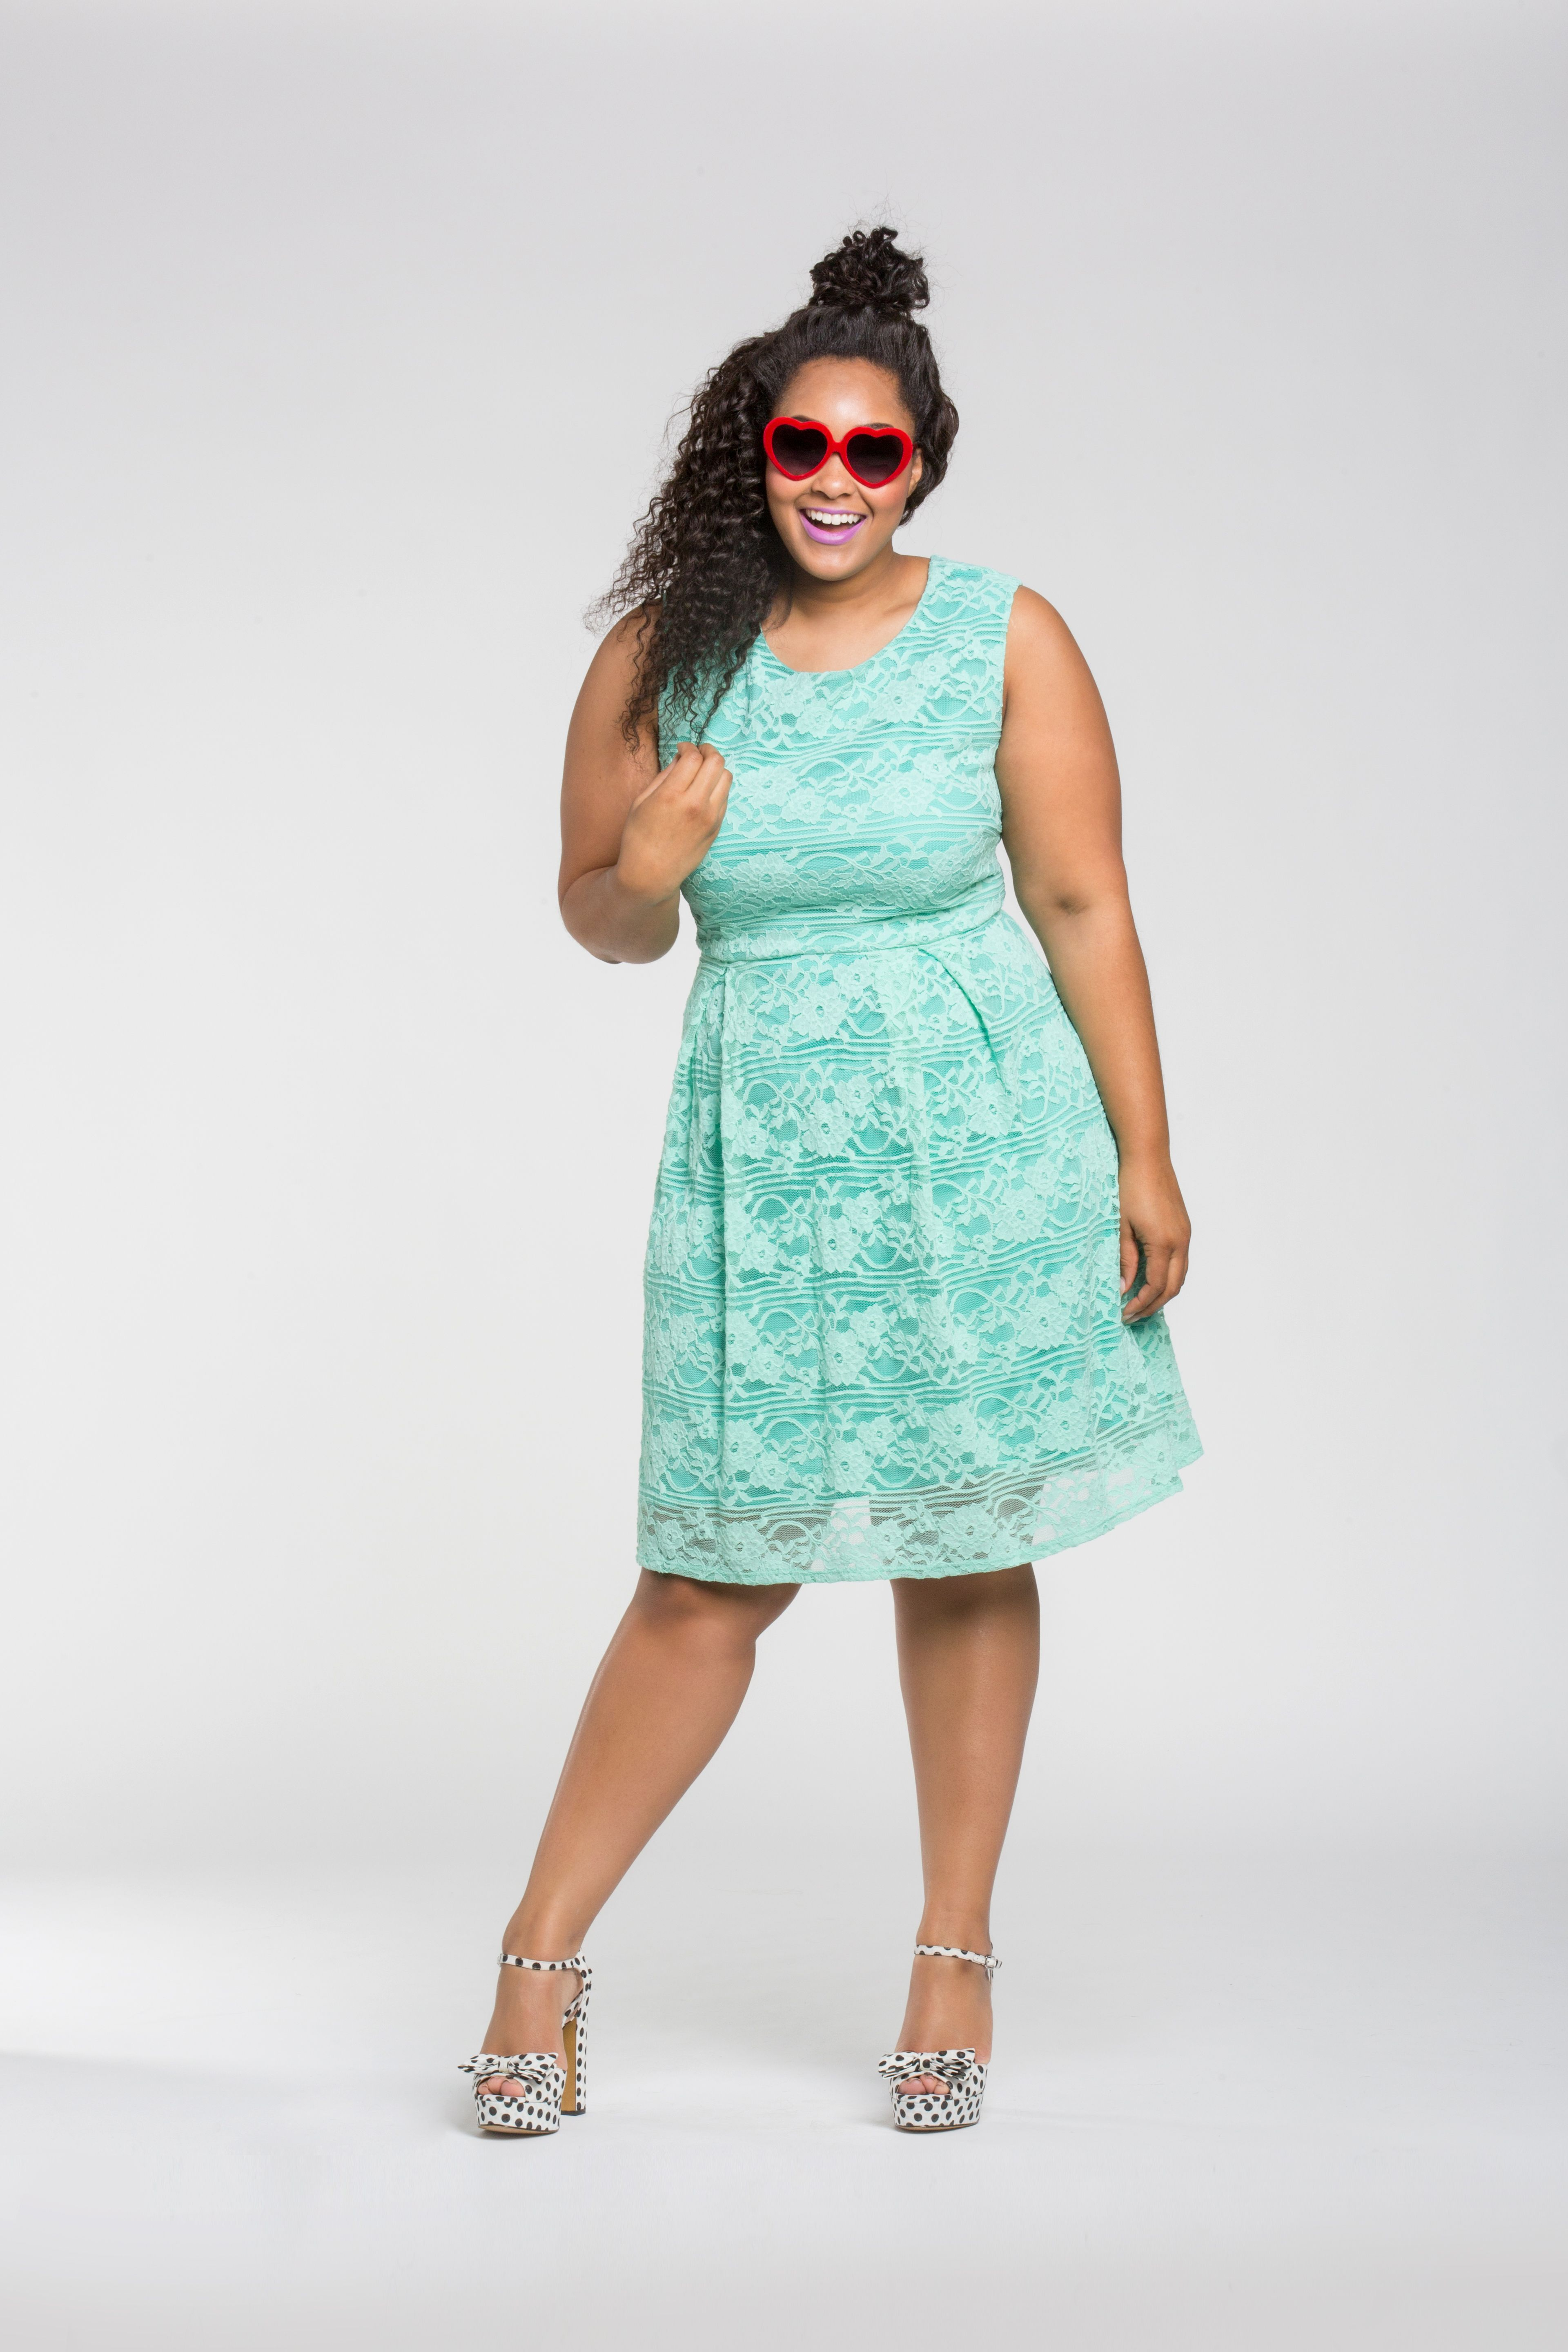 13 Gorgeous Prom Dresses Under $100   ModCloth, Lace dress and ...